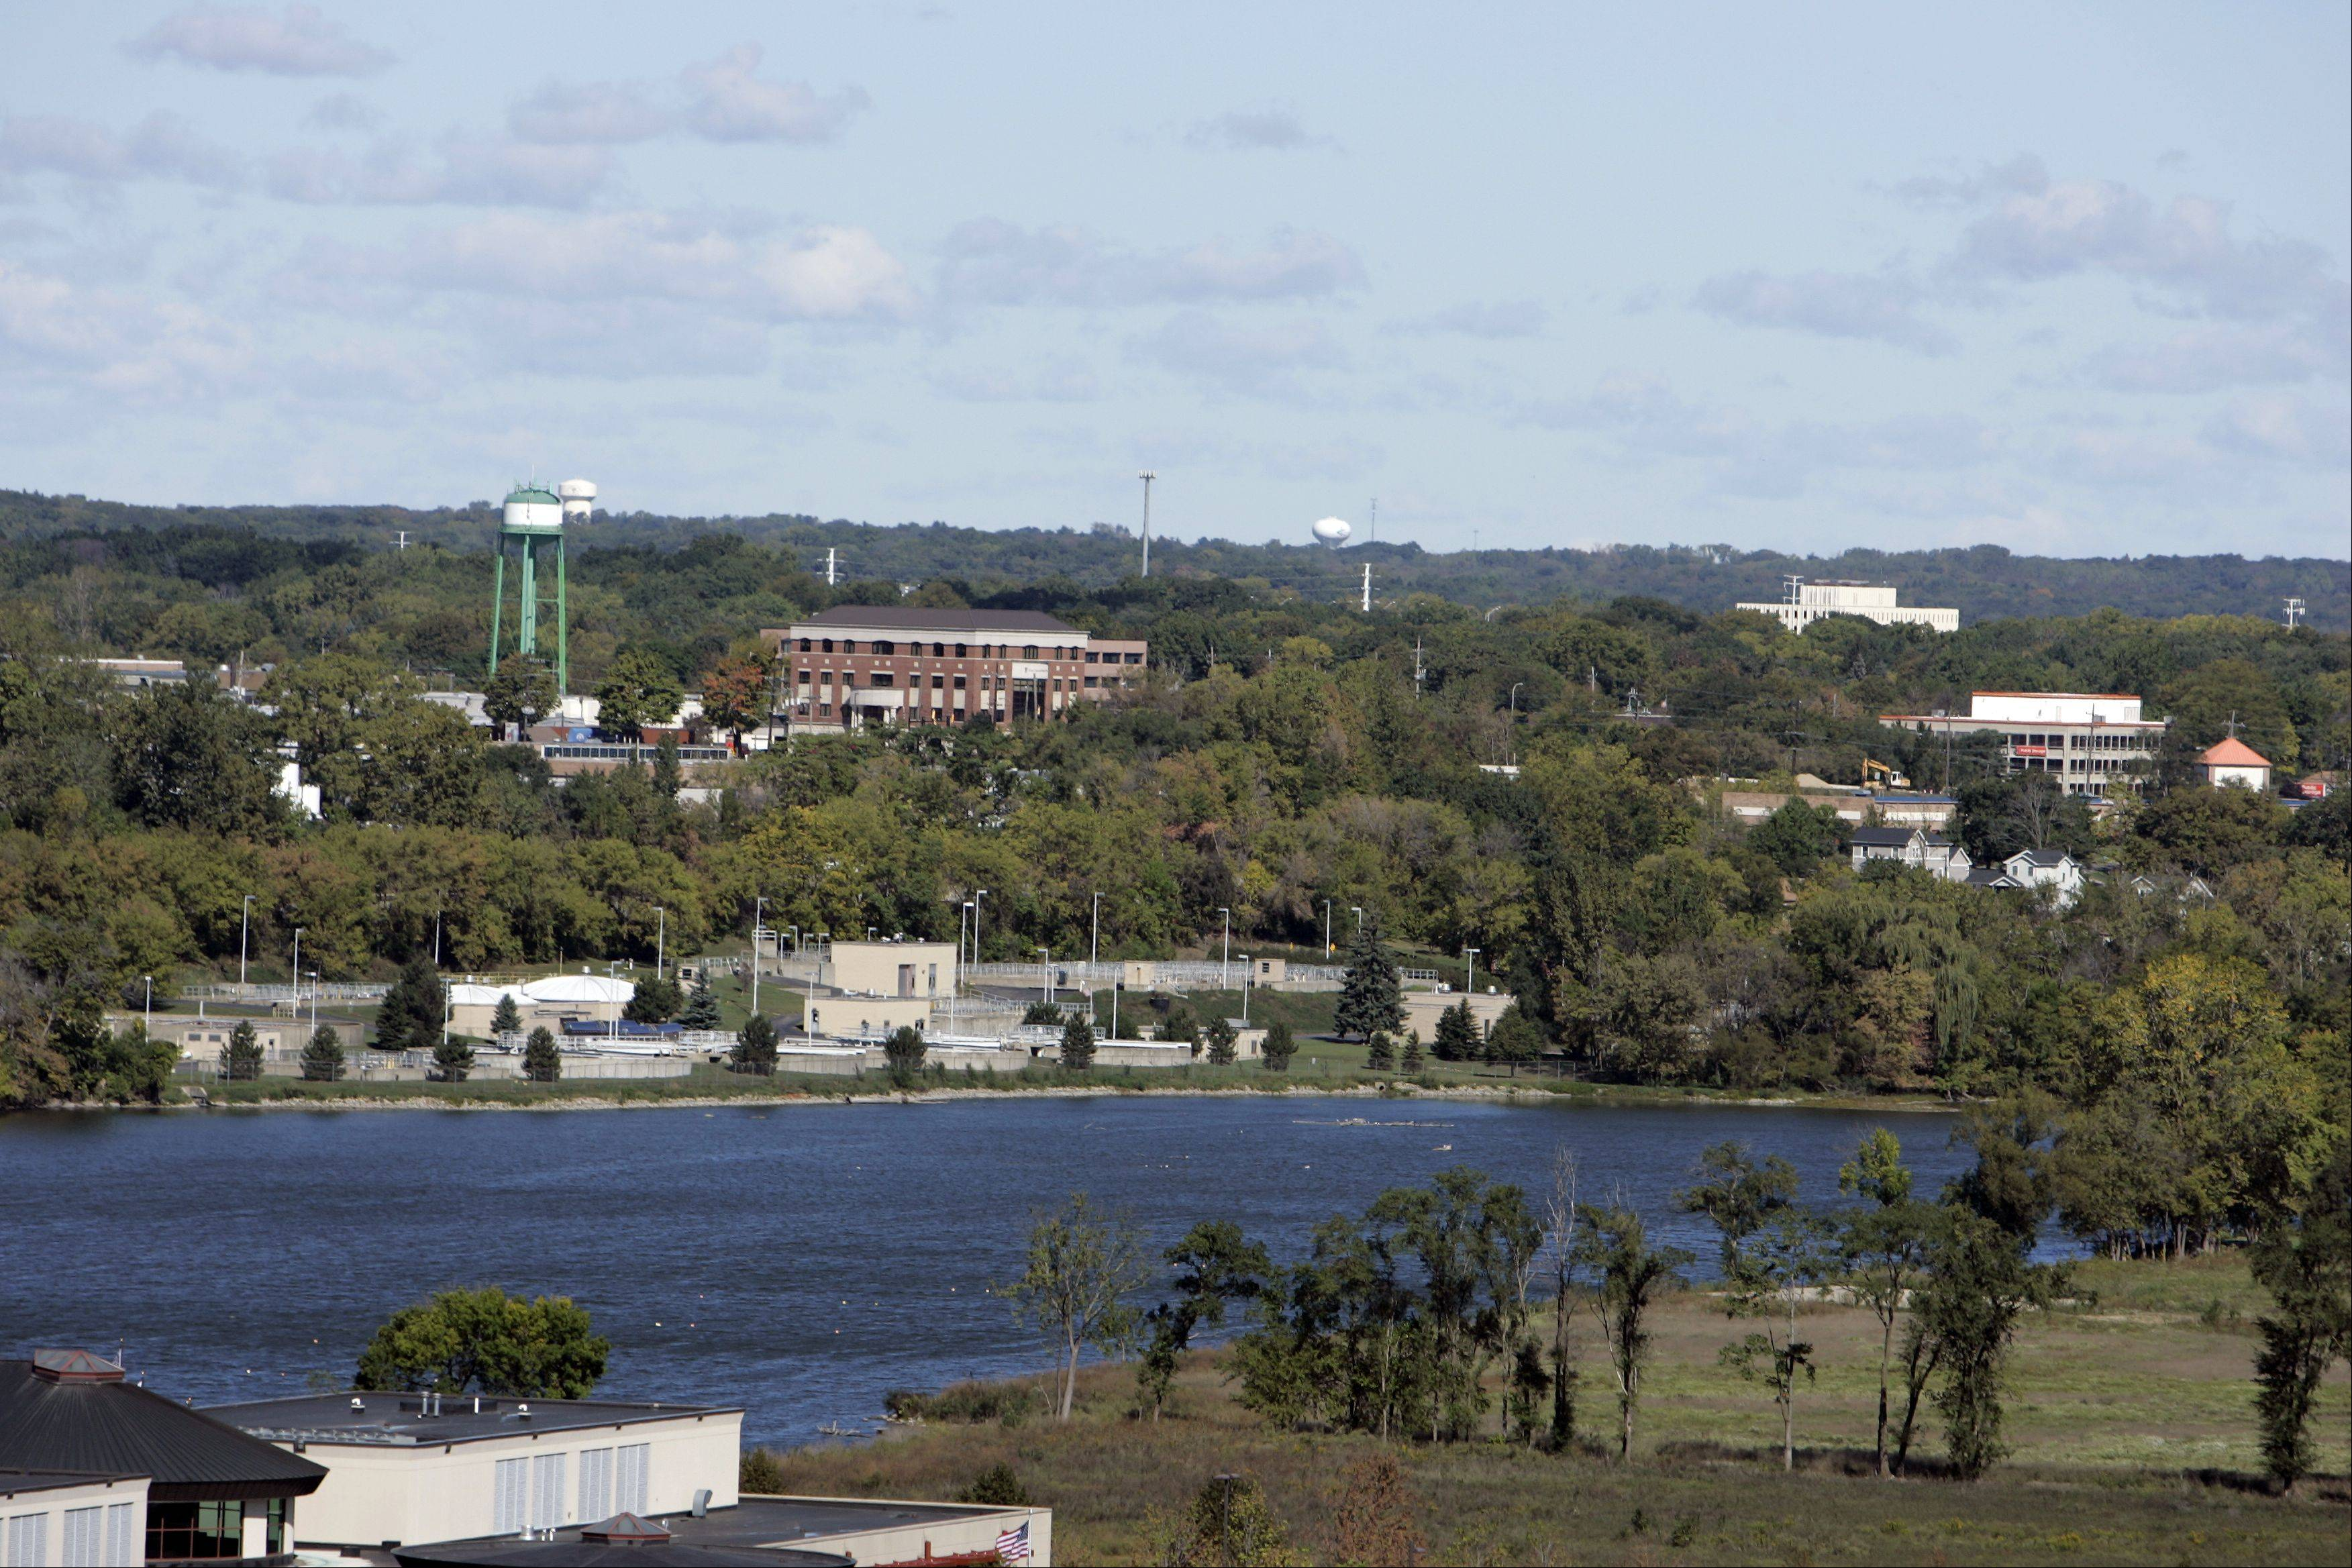 A view of Elgin's riverfront today, looking north along the Fox River from downtown.